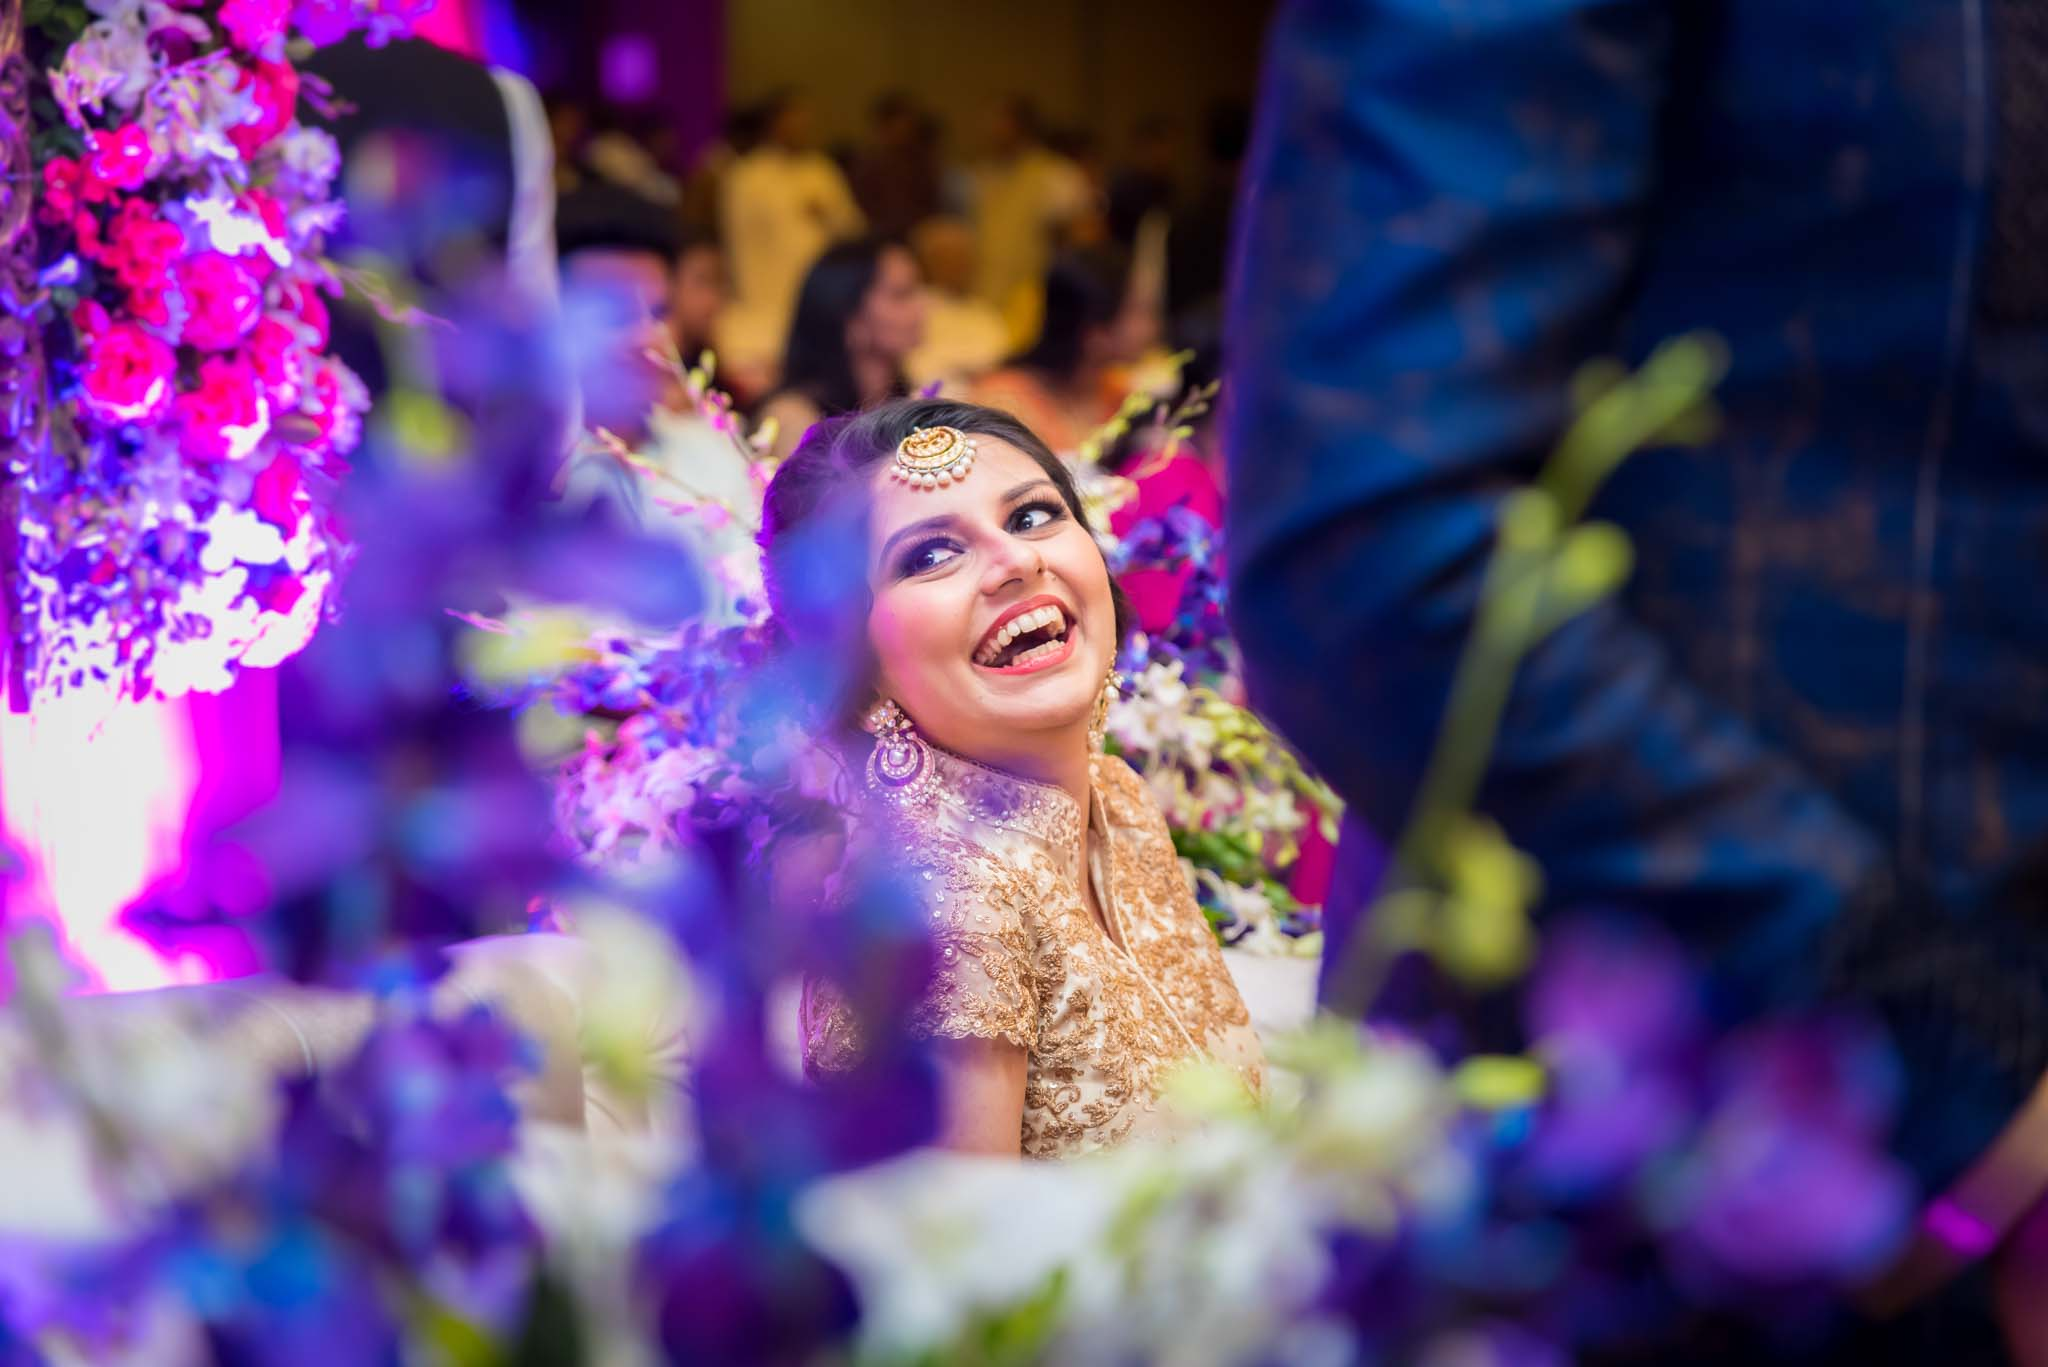 Candid-Wedding-Photography-Nagpur-Destination-28